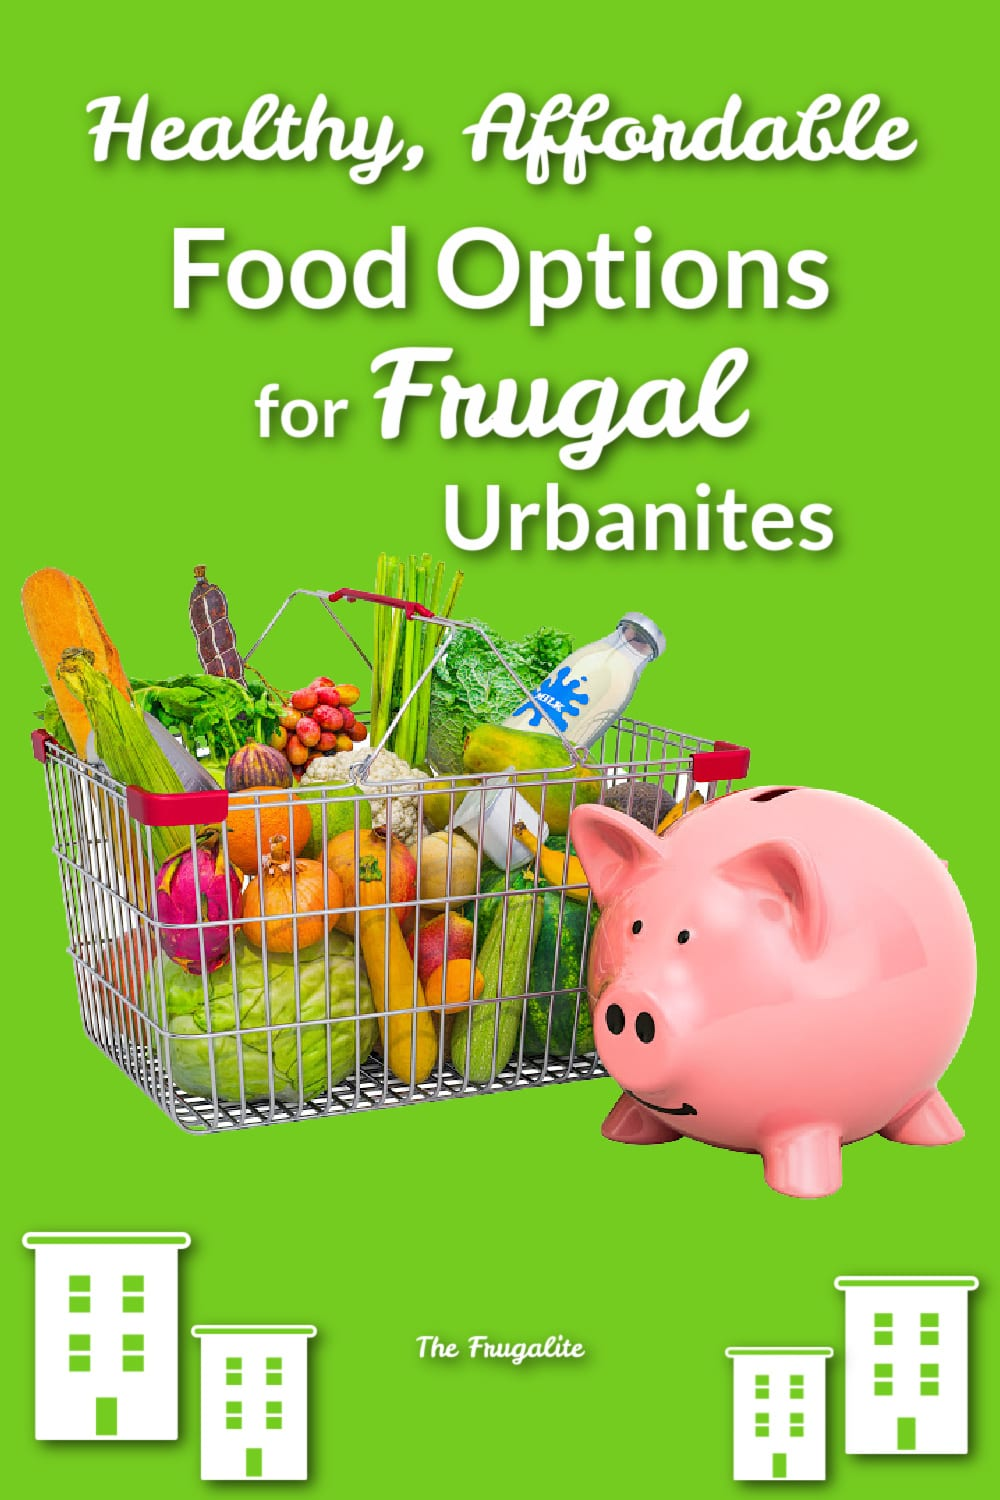 Healthy, Affordable Food Options for Urban Frugalites